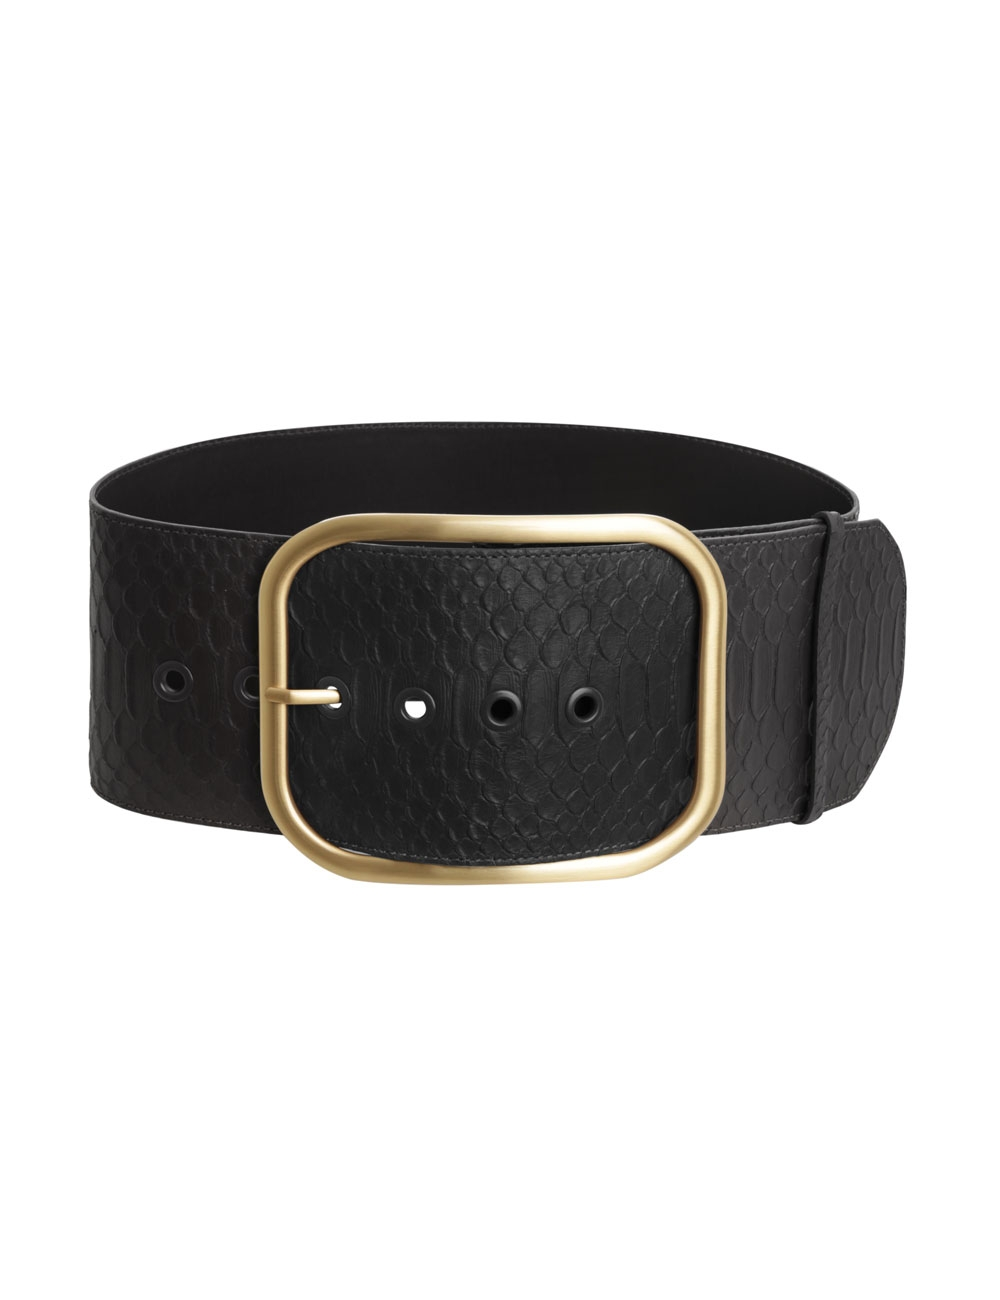 Oversized Buckle Waist Belt